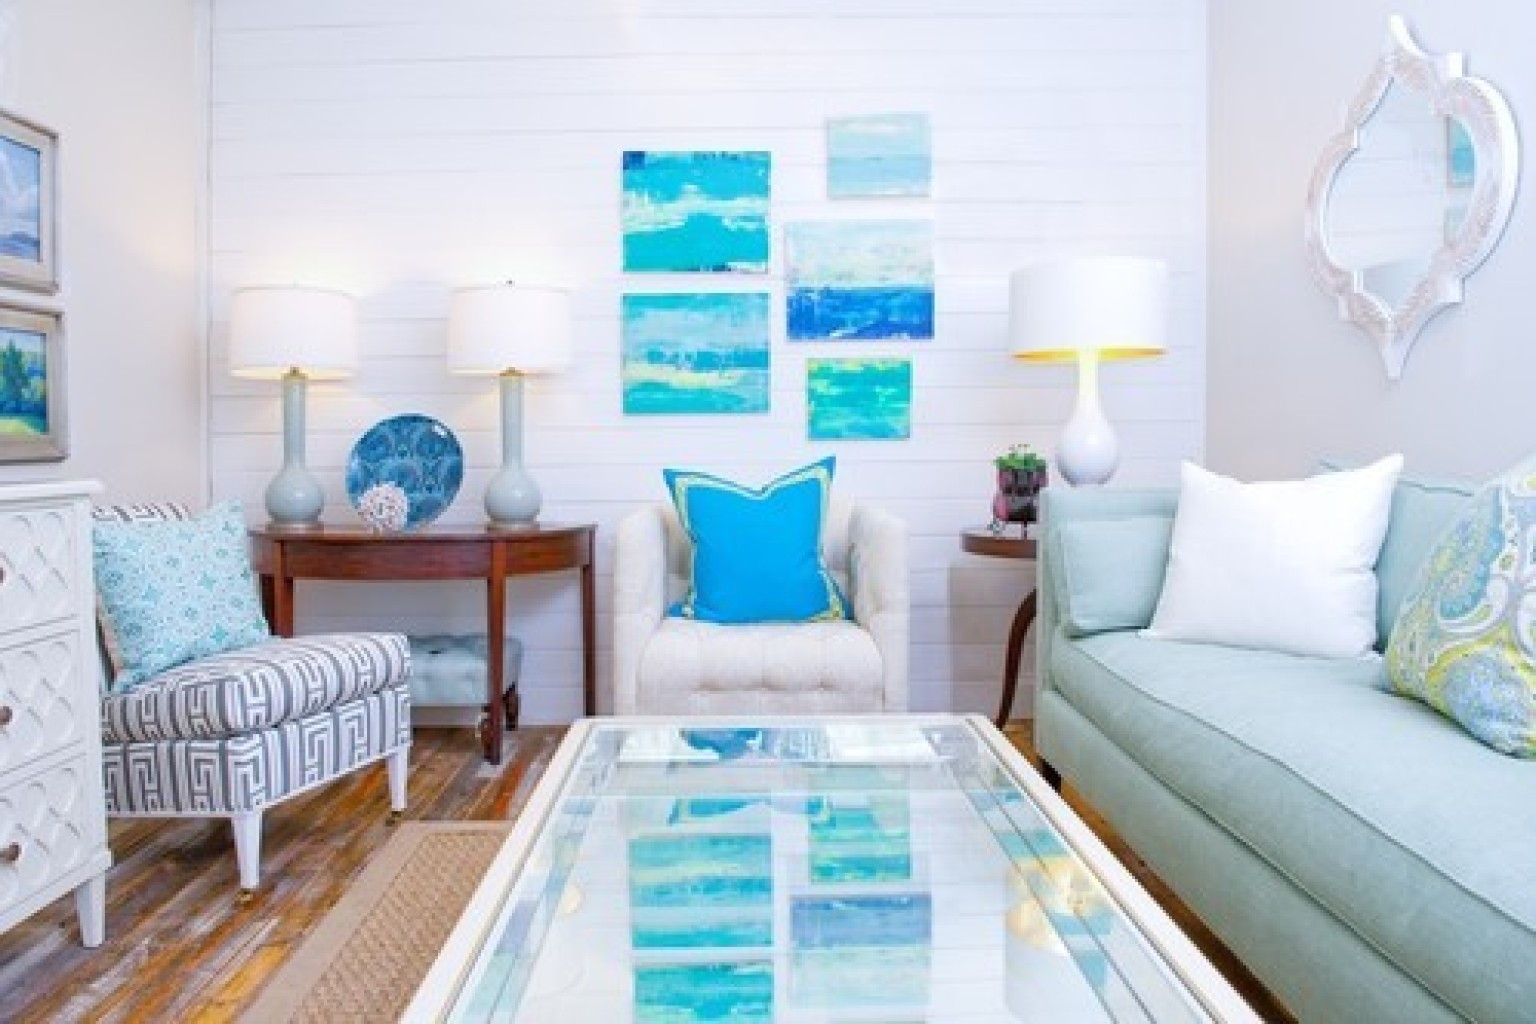 8 Beach Homes That Don't Come Close To Making Us Seasick